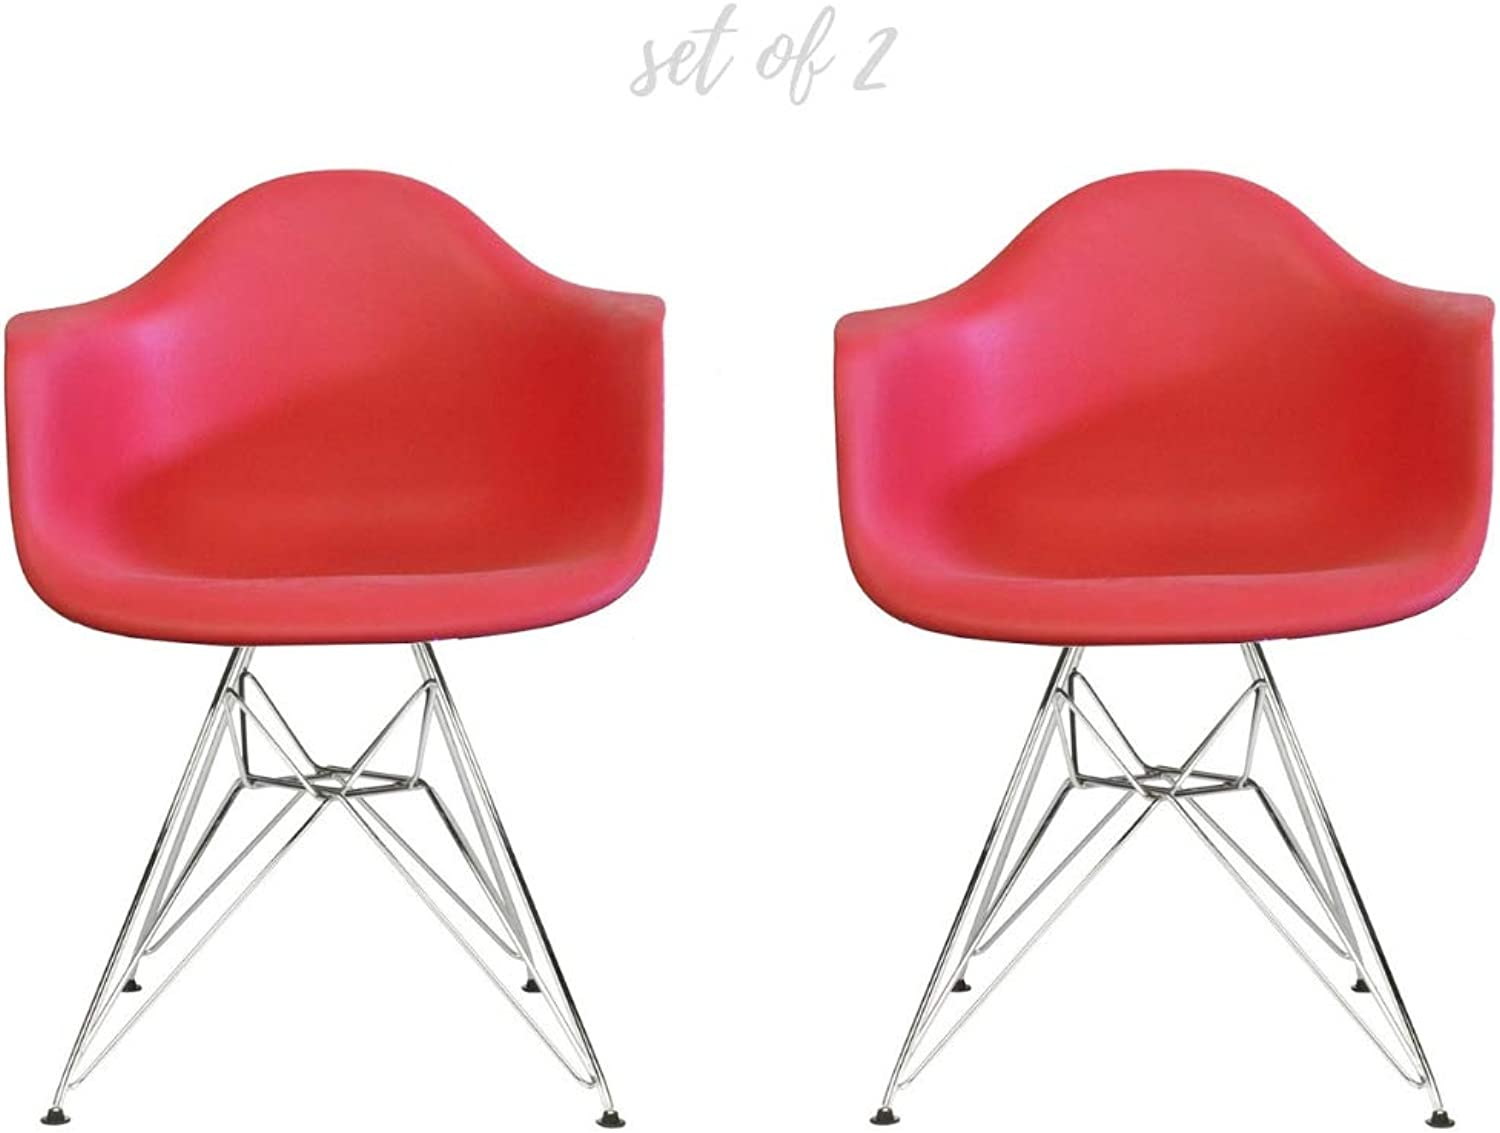 Take Me Home Furniture Eiffel Style Bucket Chair with Chrome Legs, red, Set of 2, Dining Chair